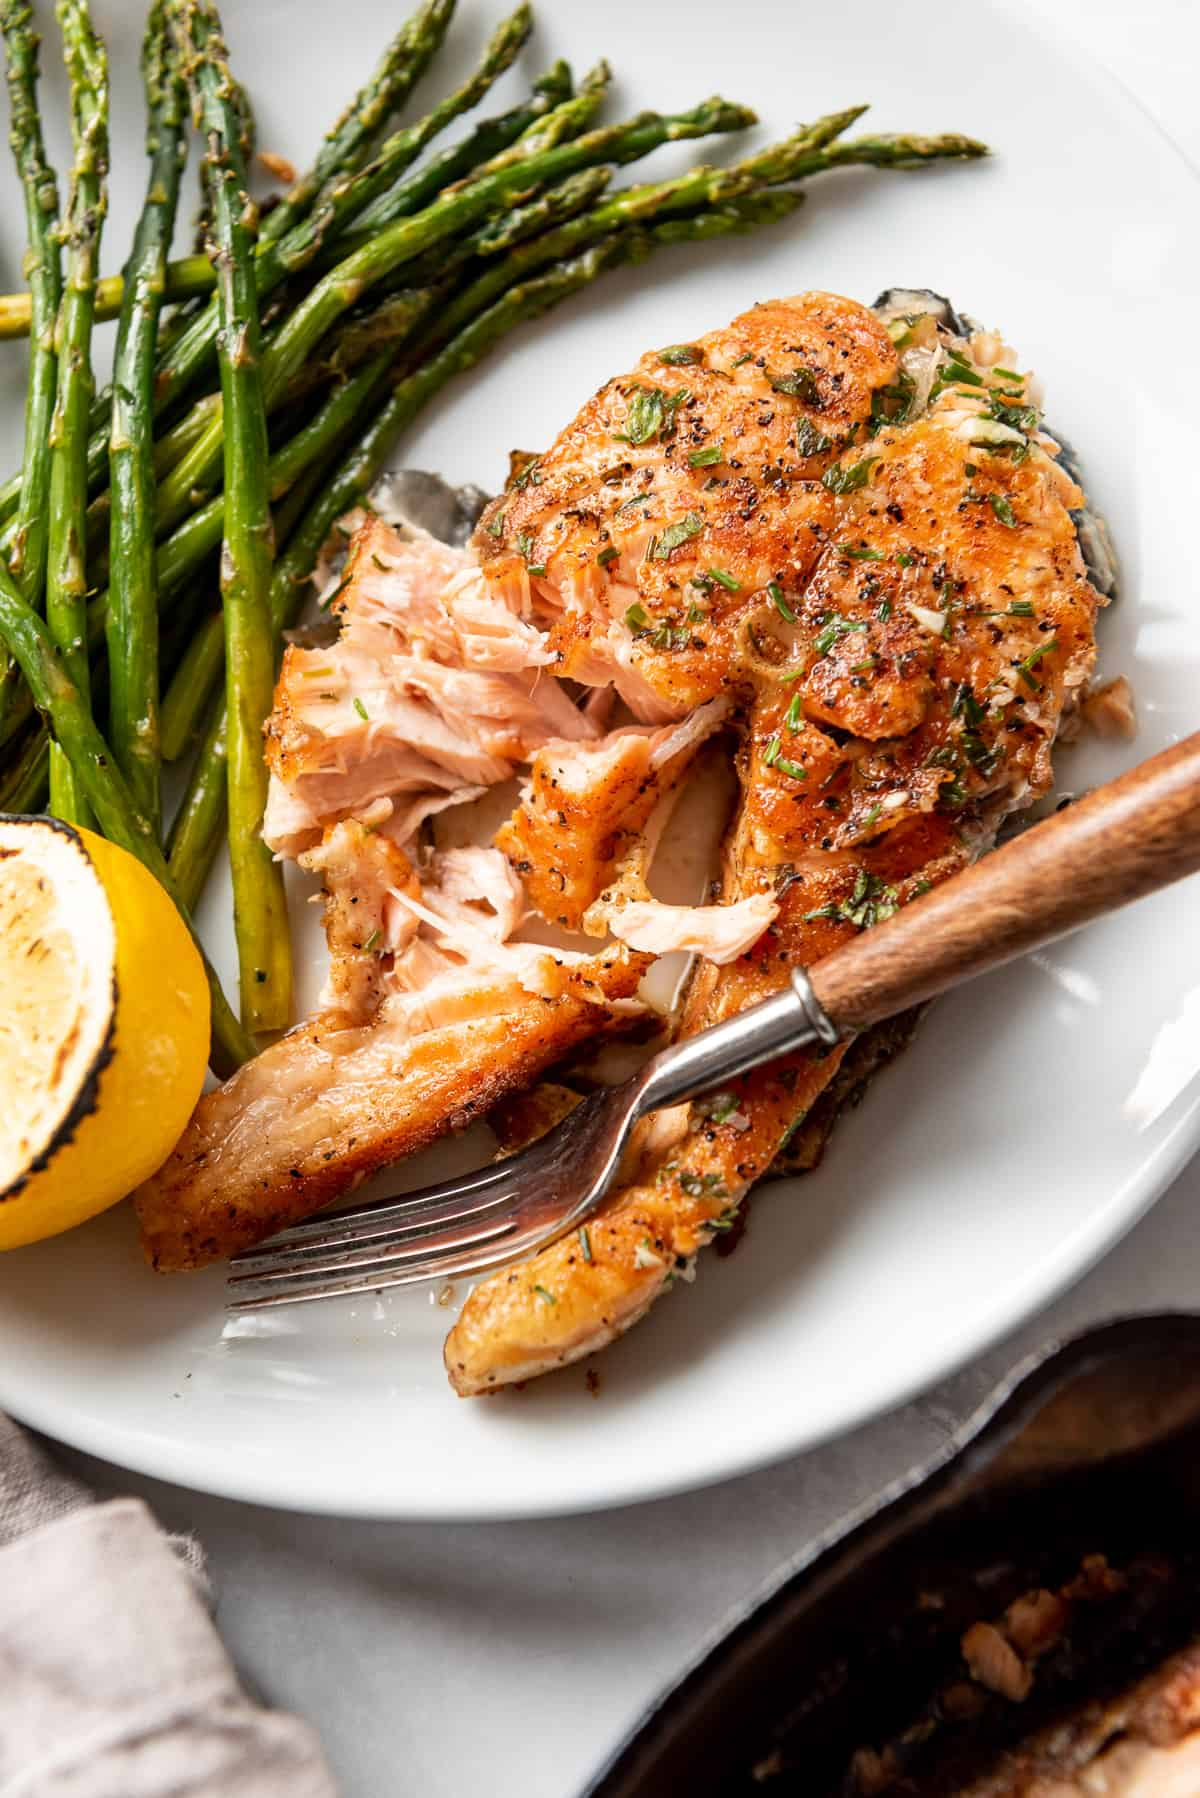 Flaked salmon on a white plate with a fork and roasted asparagus.